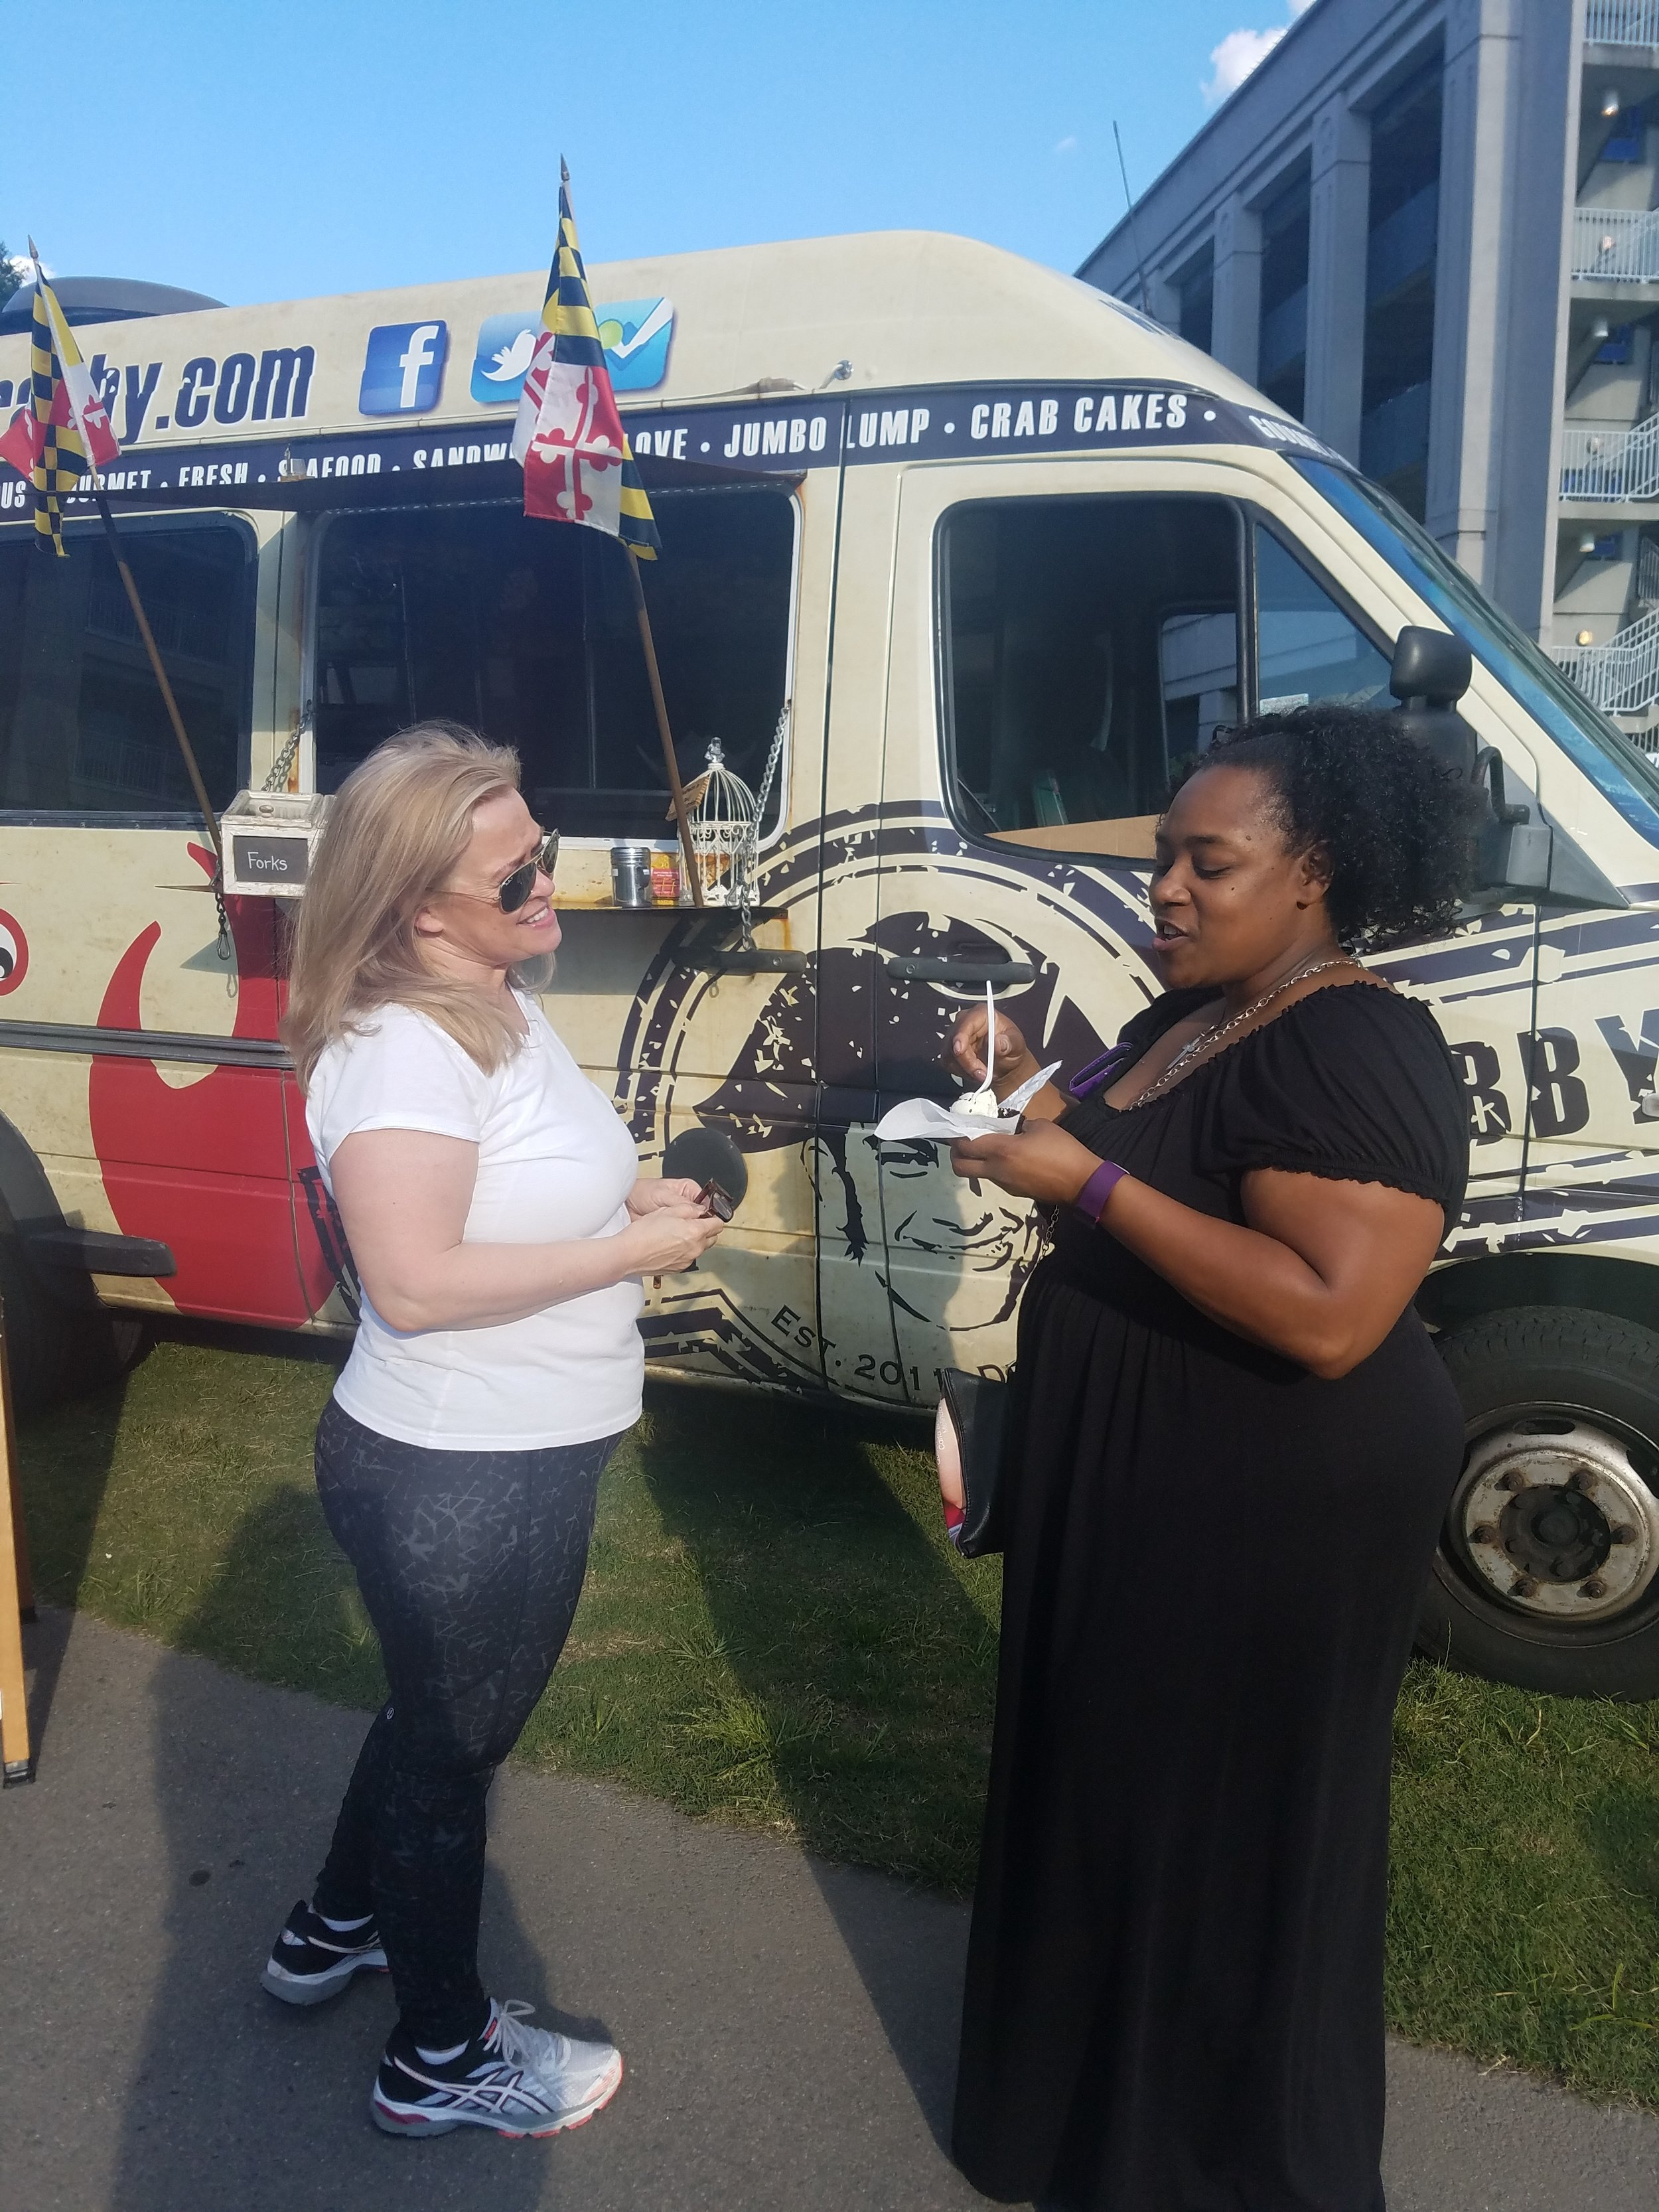 Owner Carla of Just Cupcakes (left) with a customer (right)